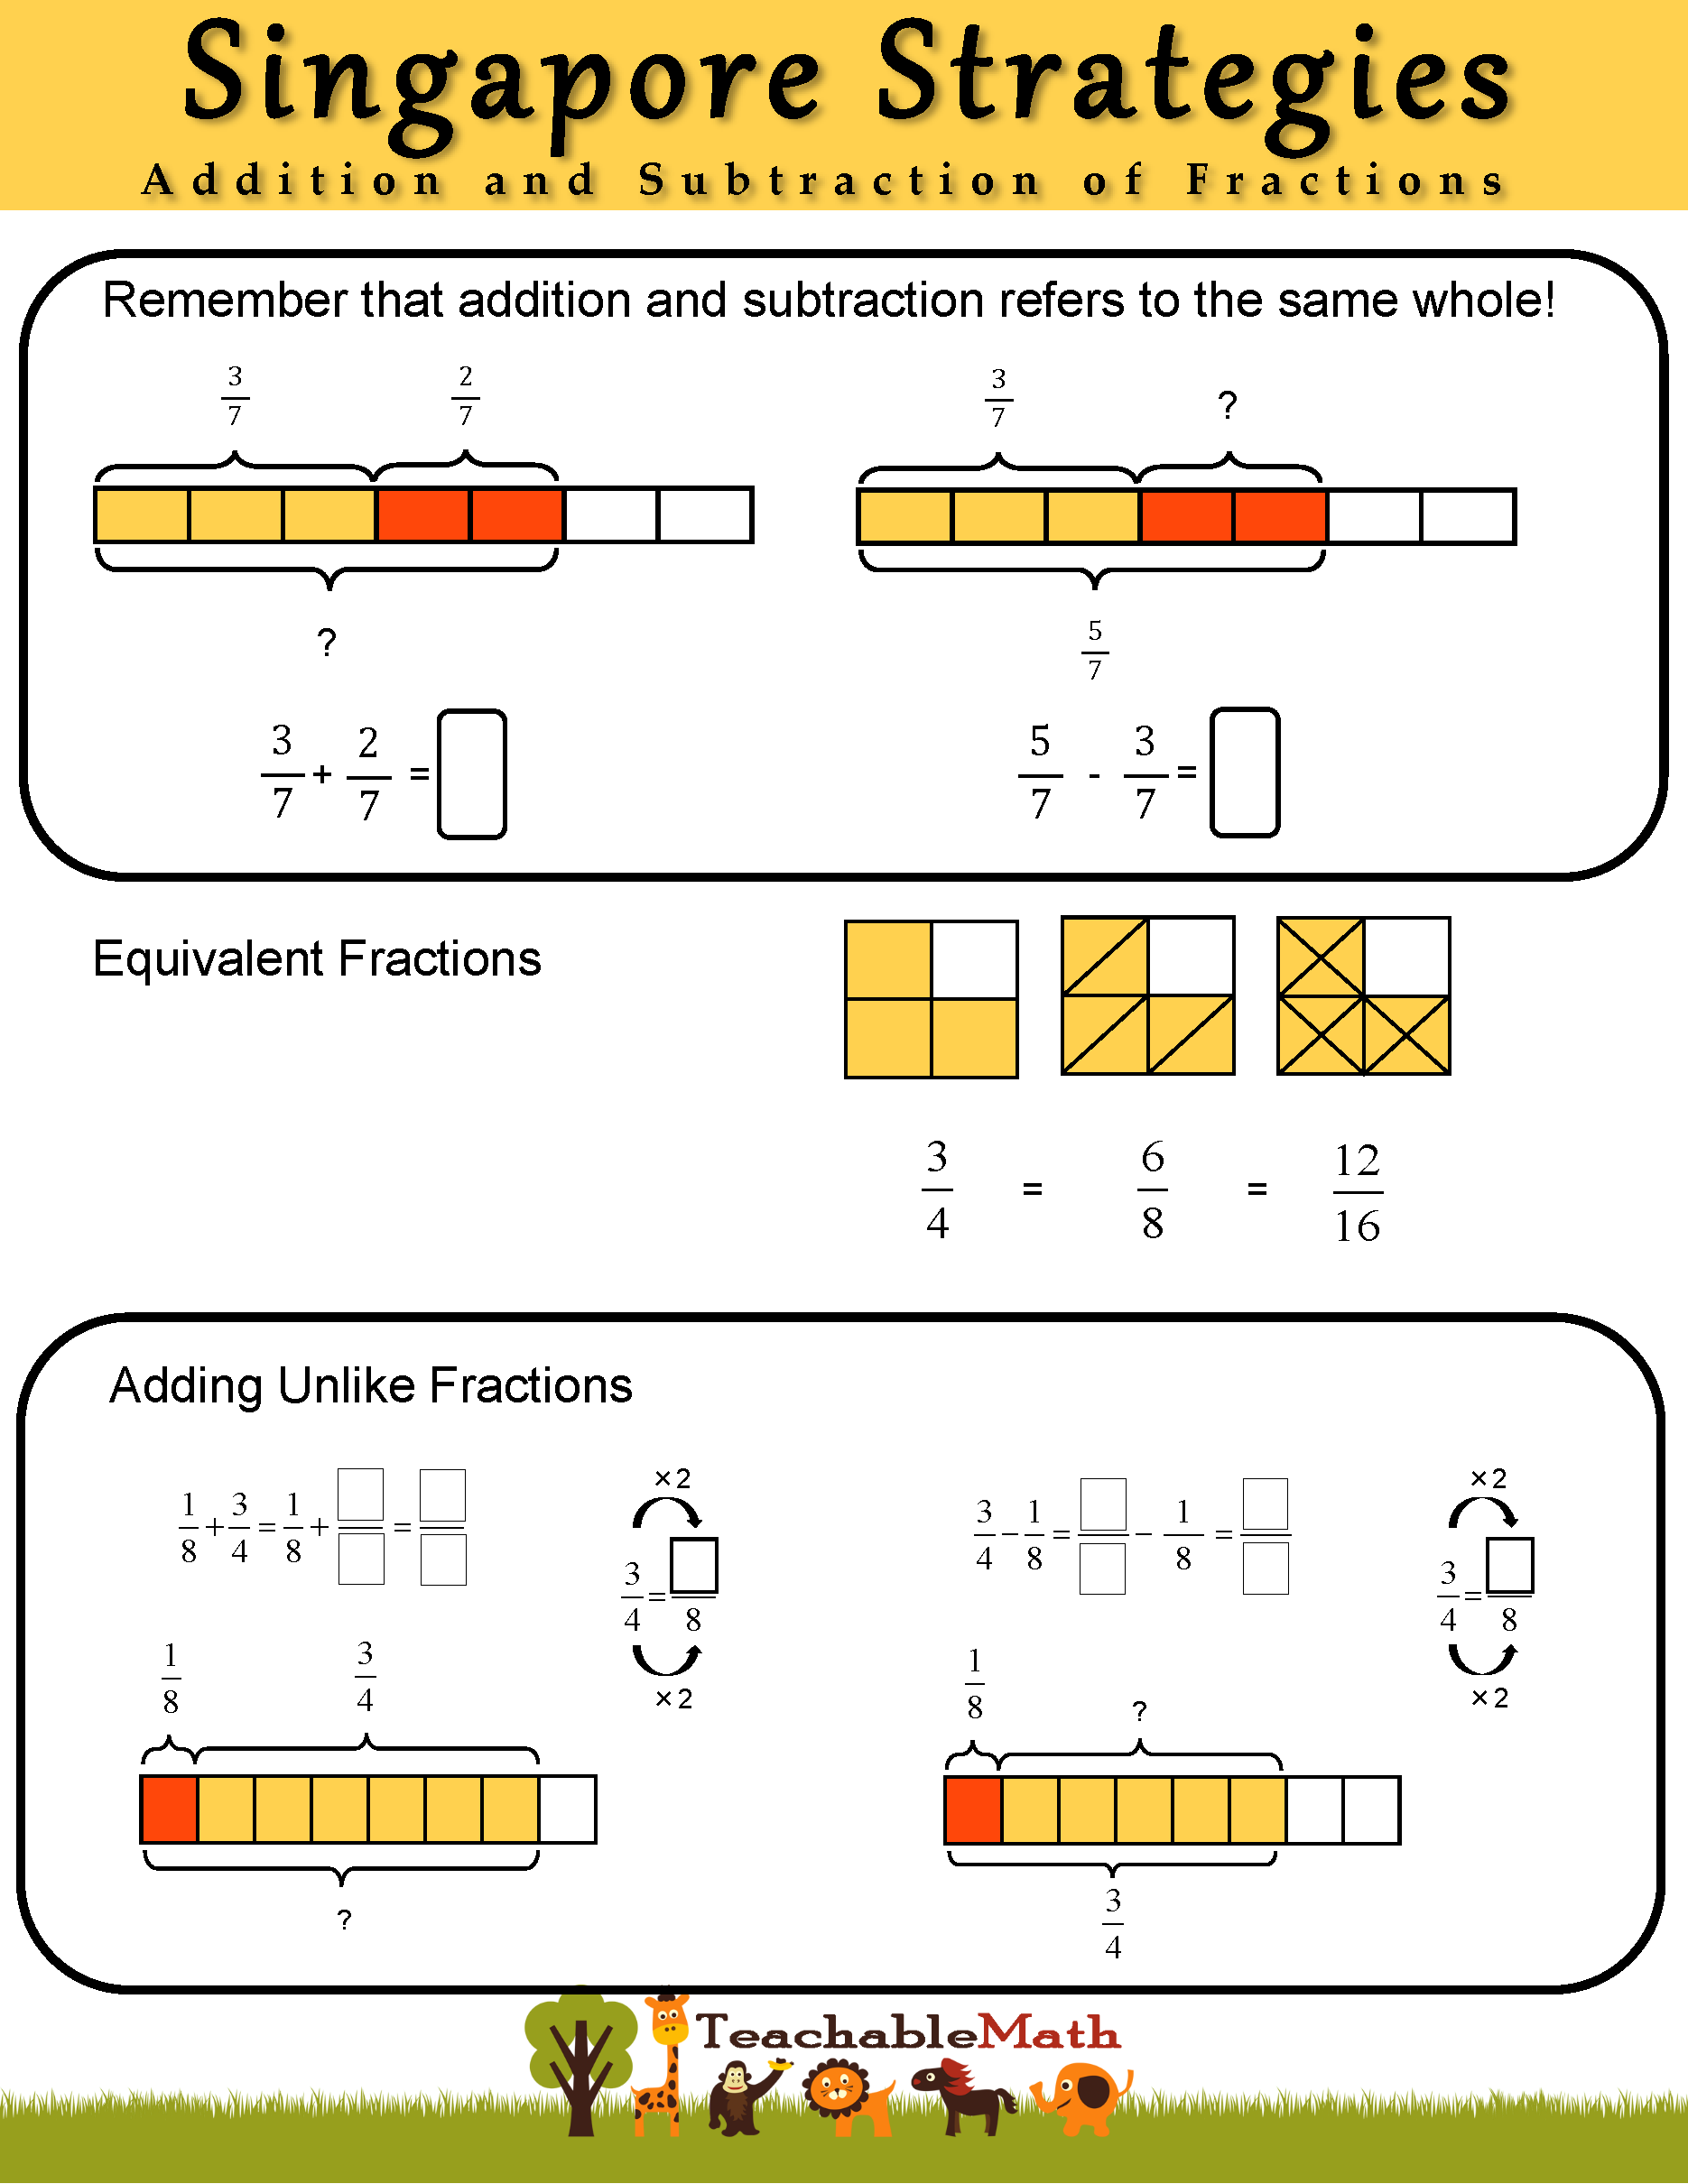 Singapore Strategies Addition and Subtraction of Fractions Cheat Sheet